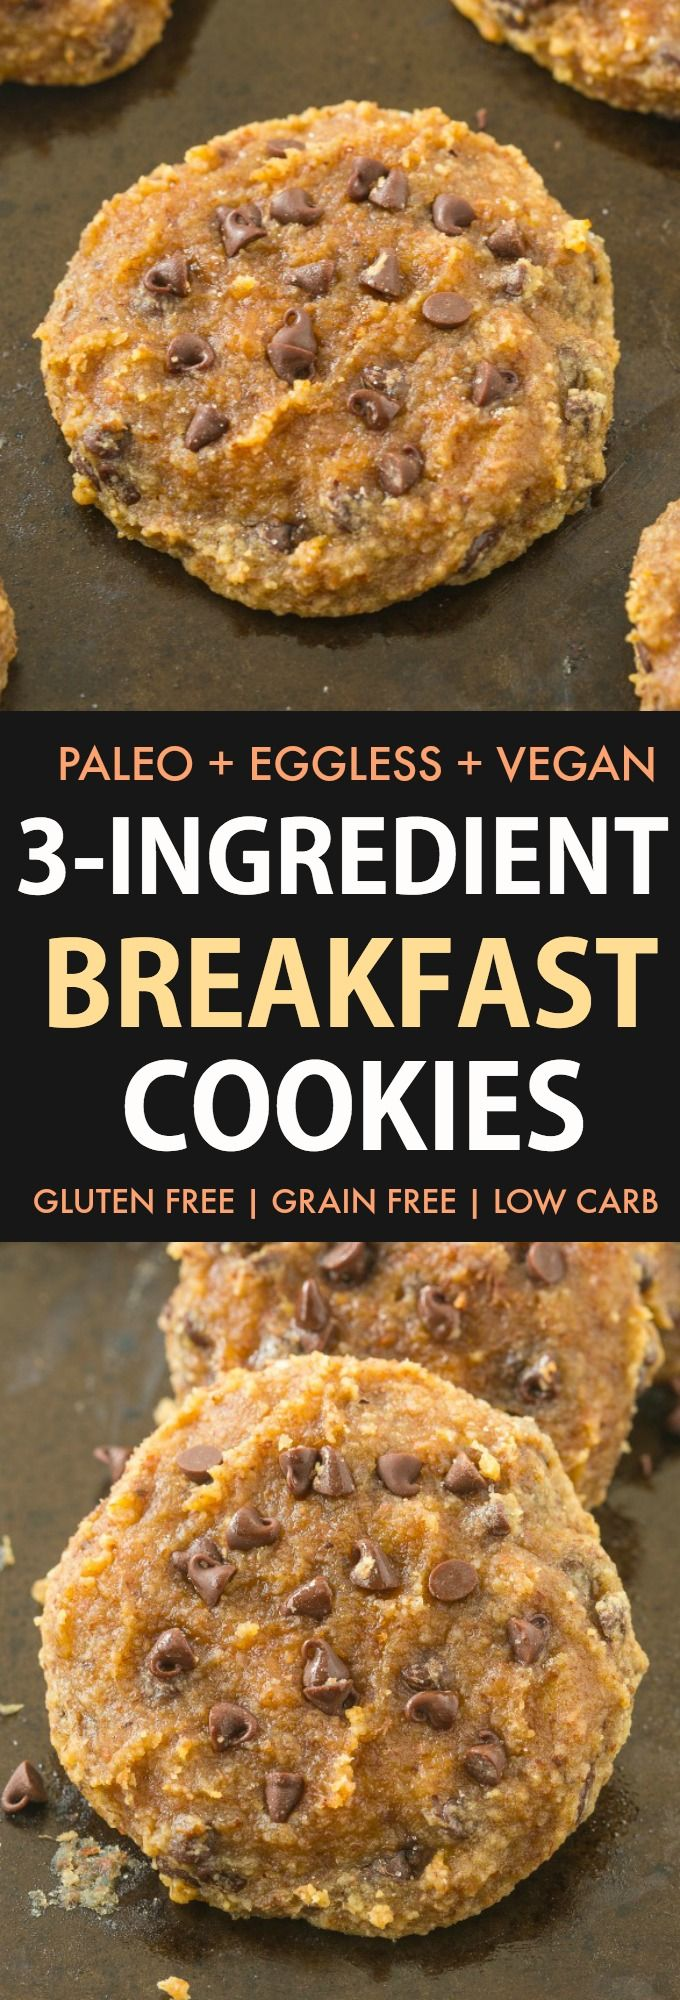 These 3 ingredient Paleo BREAKFAST Cookies are DELICIOUS and SO EASY! Made with …